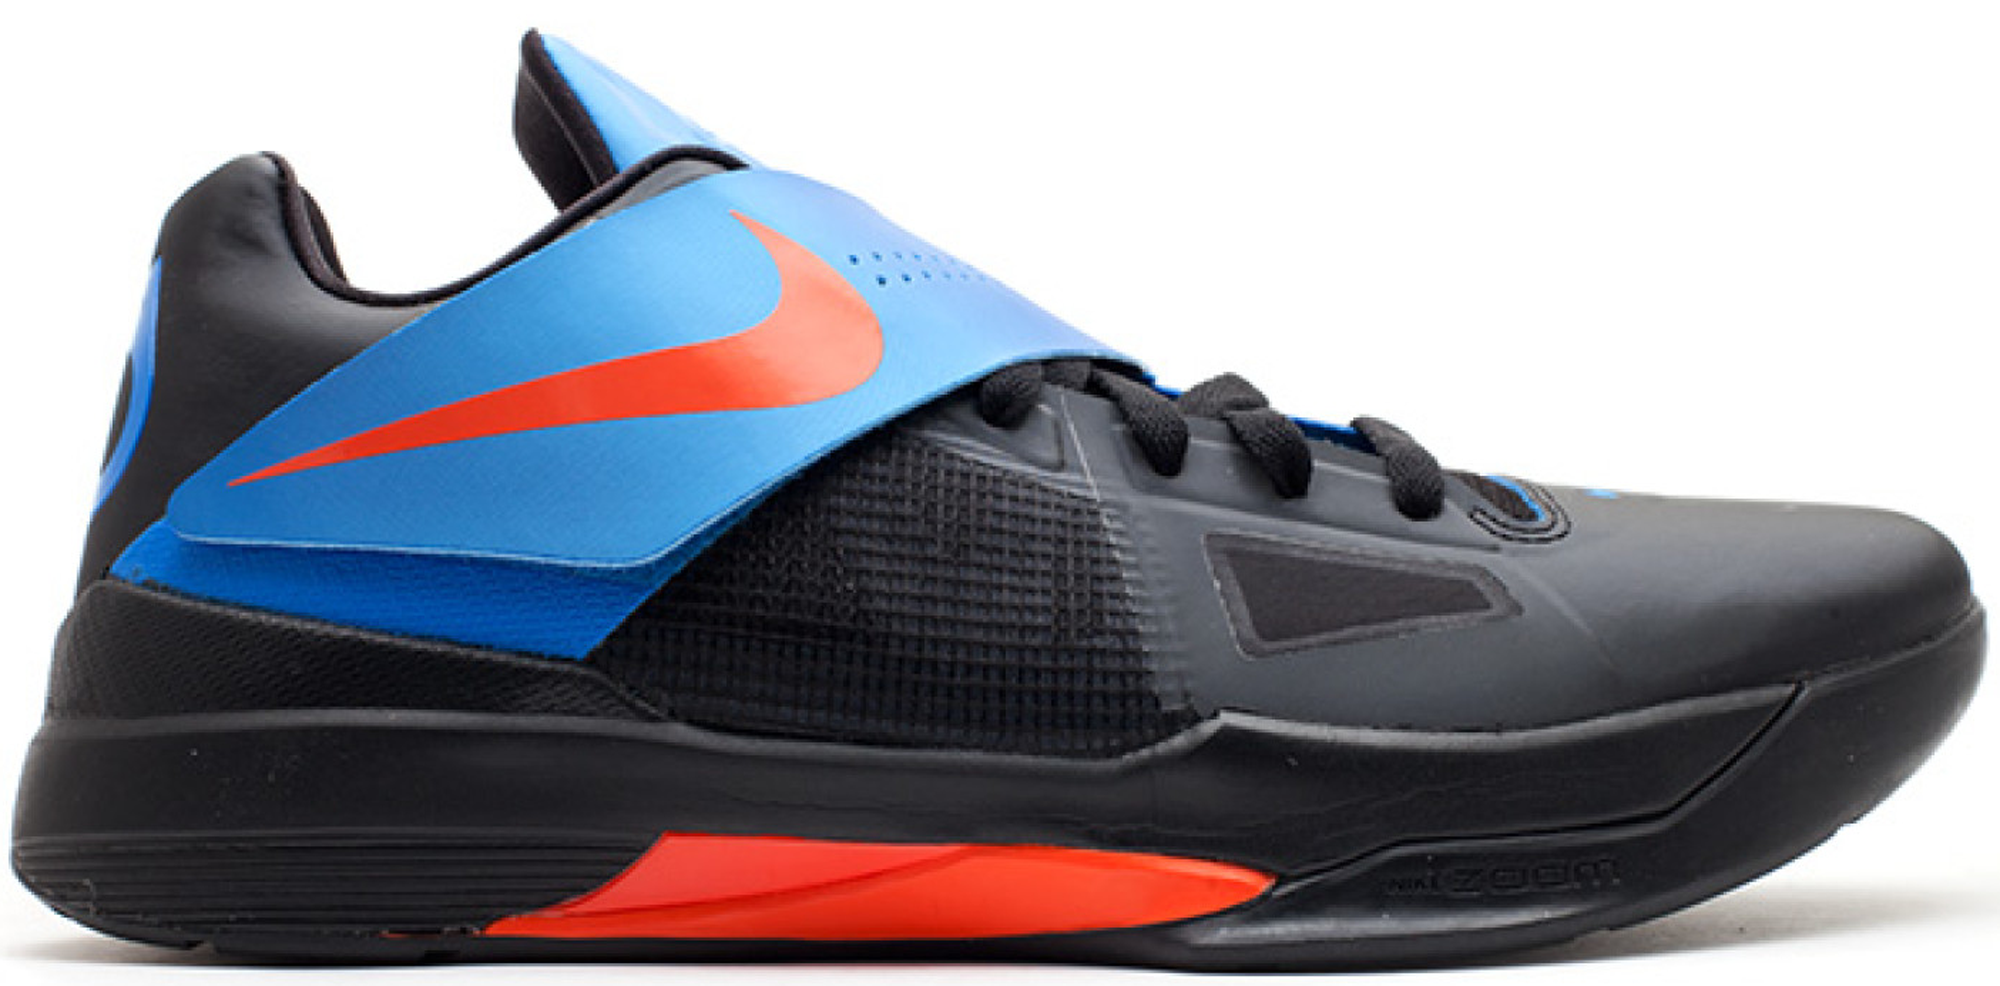 kd 4 away Kevin Durant shoes on sale